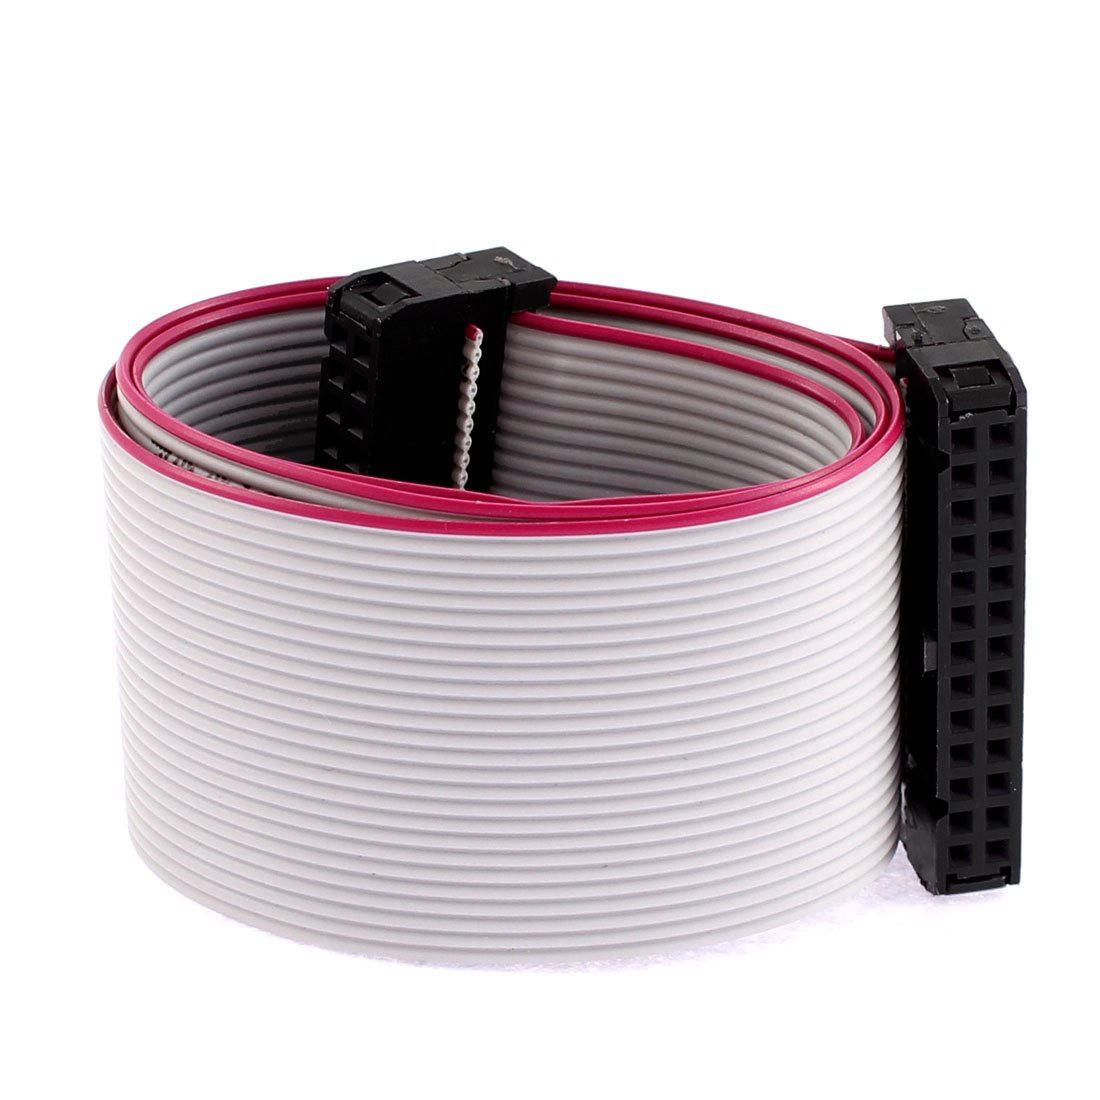 Cable Ribbon 26 Pin, 26 Wire, 2.54 mm Pitch, 40 cm Uxcell